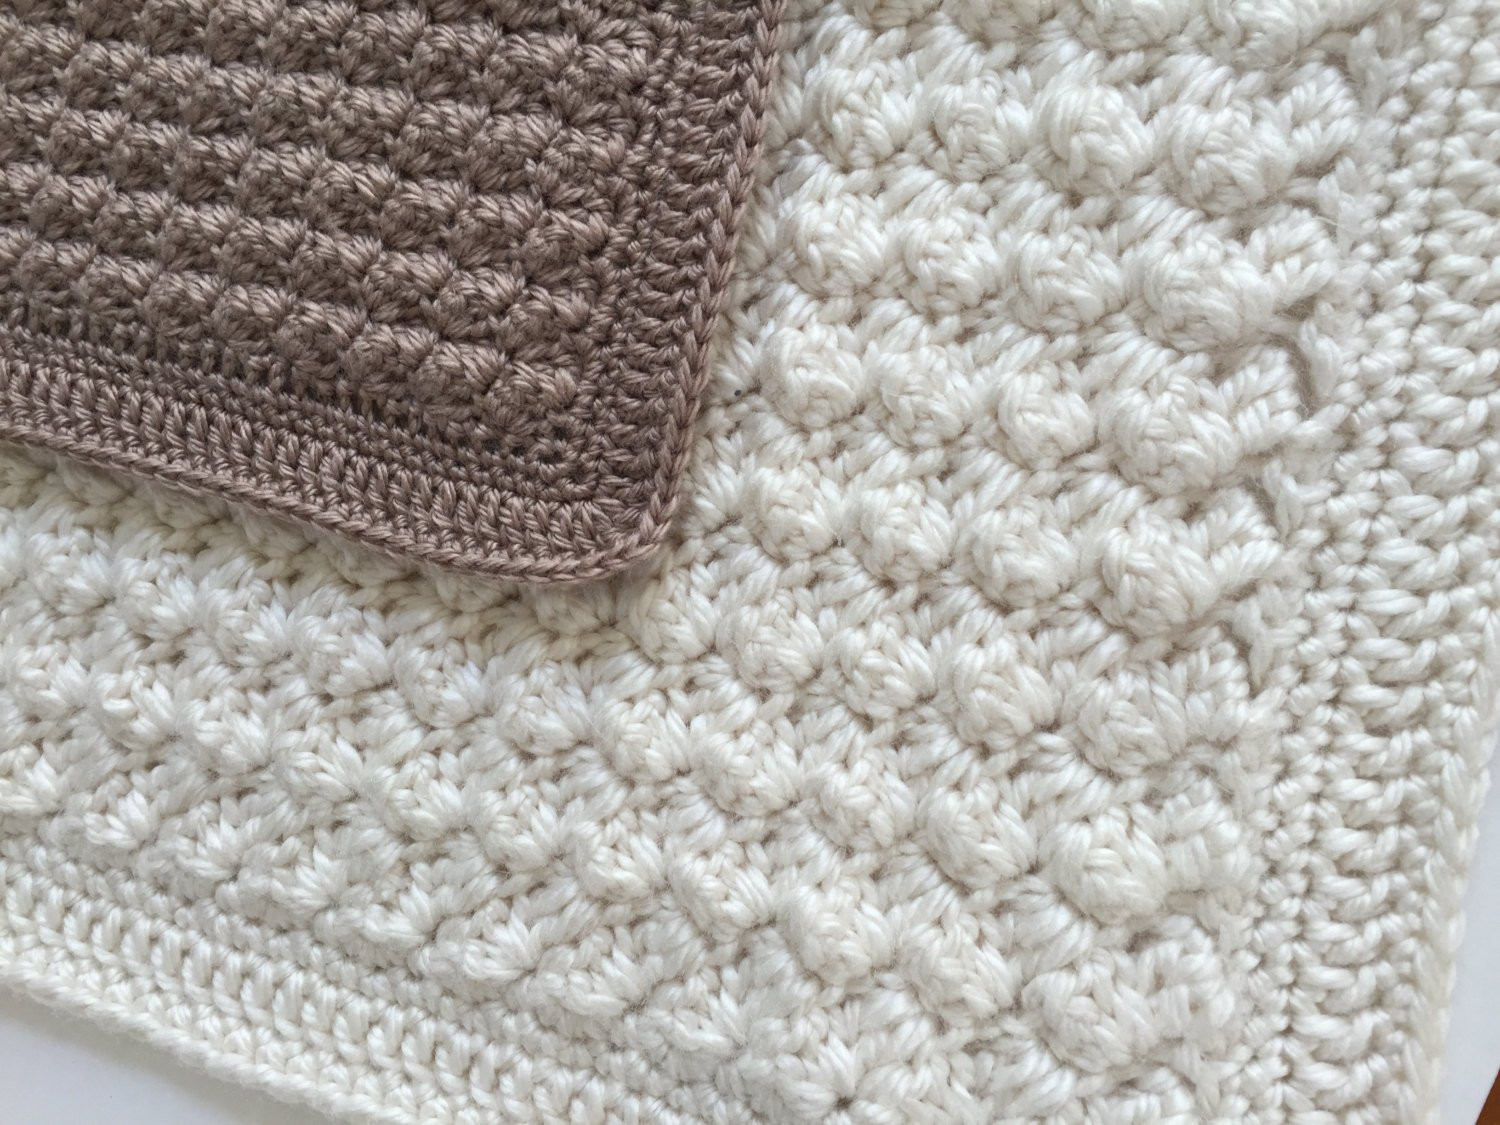 Awesome Chunky Crochet Baby Blanket Pattern Chunky Yarn Blanket Pattern Of Wonderful 45 Images Chunky Yarn Blanket Pattern